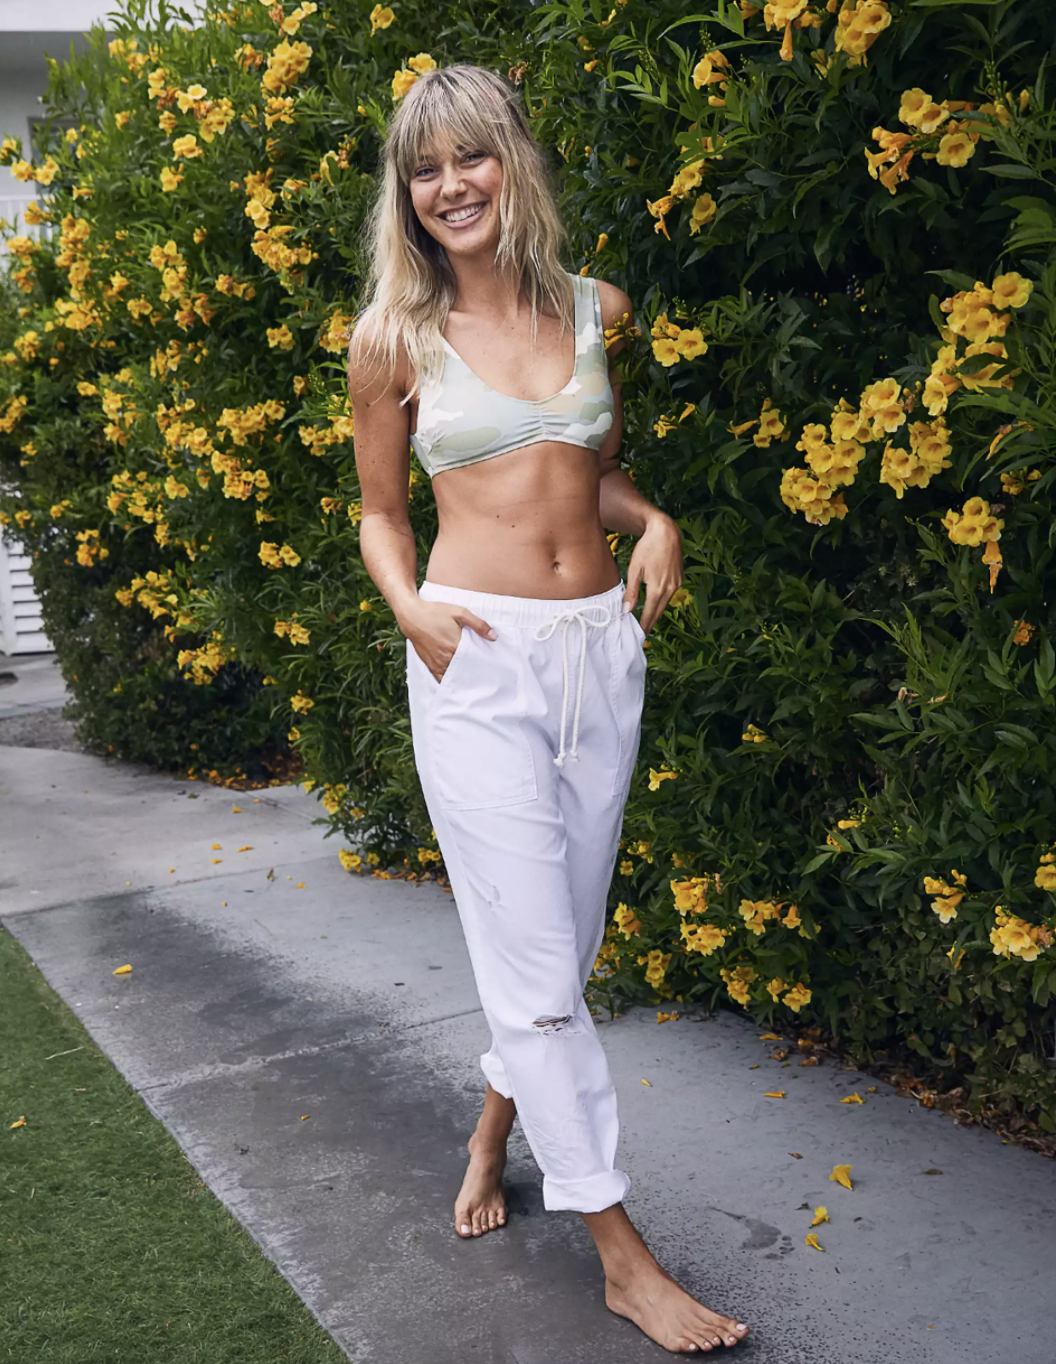 A model wearing the white pants with a bikini top while walking down a sidewalk